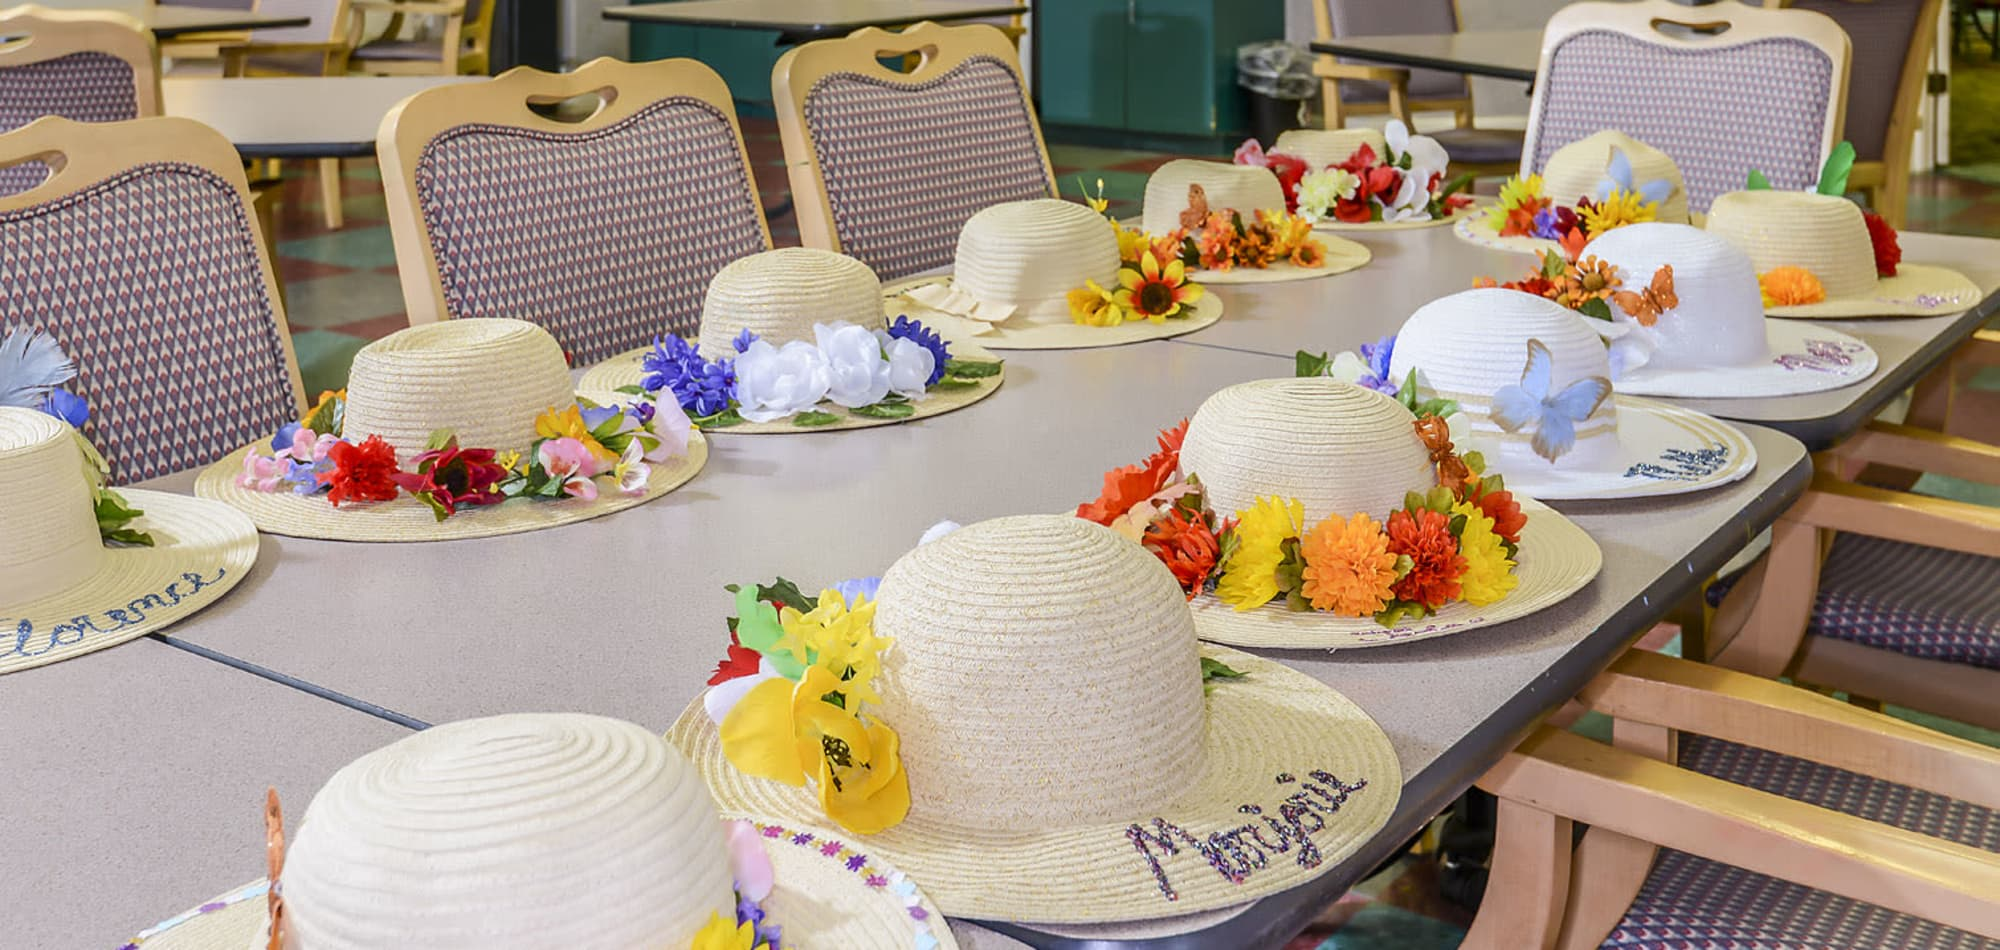 Arts and crafts activities for residents of Arbor Oaks at Lakeland Hills in Lakeland, Florida